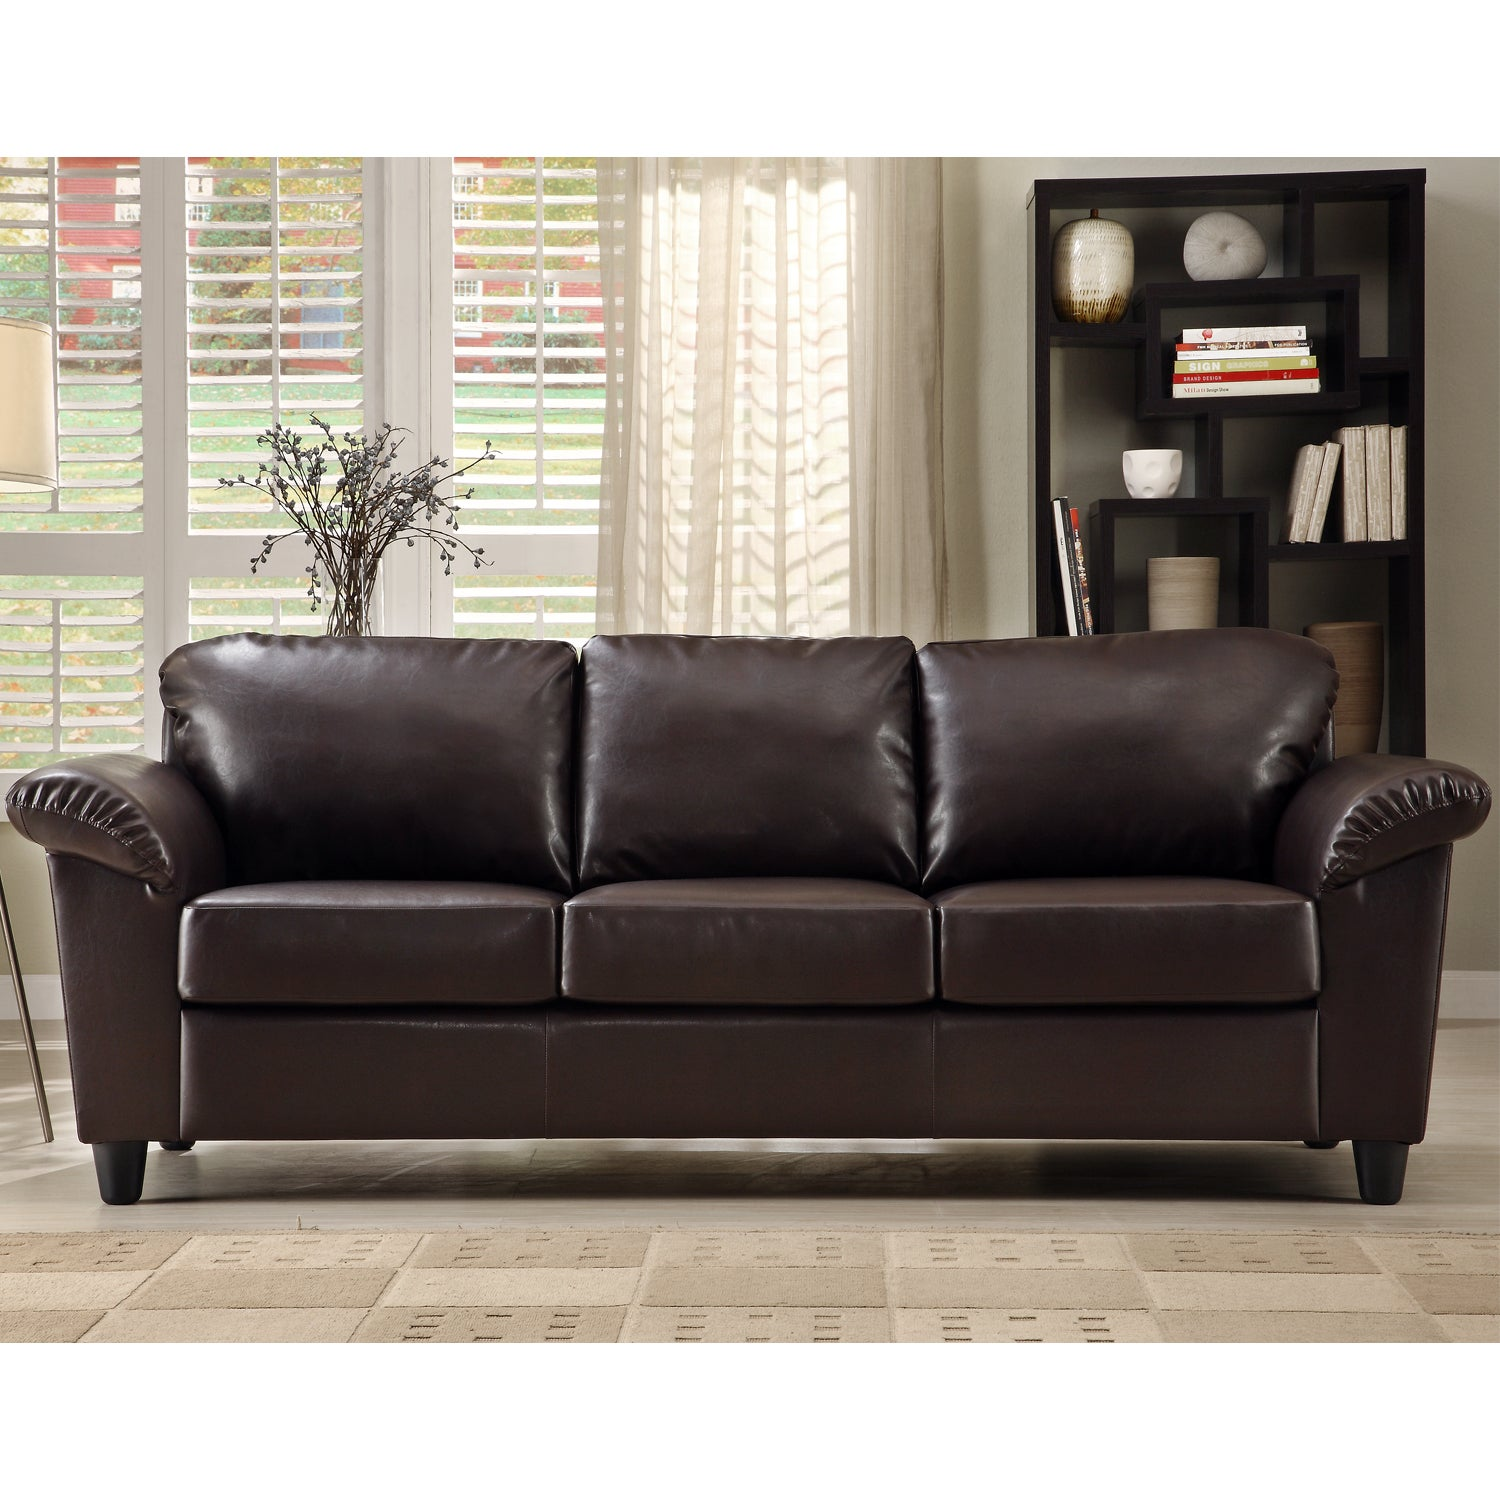 Insten Lucia Dark Brown Faux Leather Sofa Free Shipping